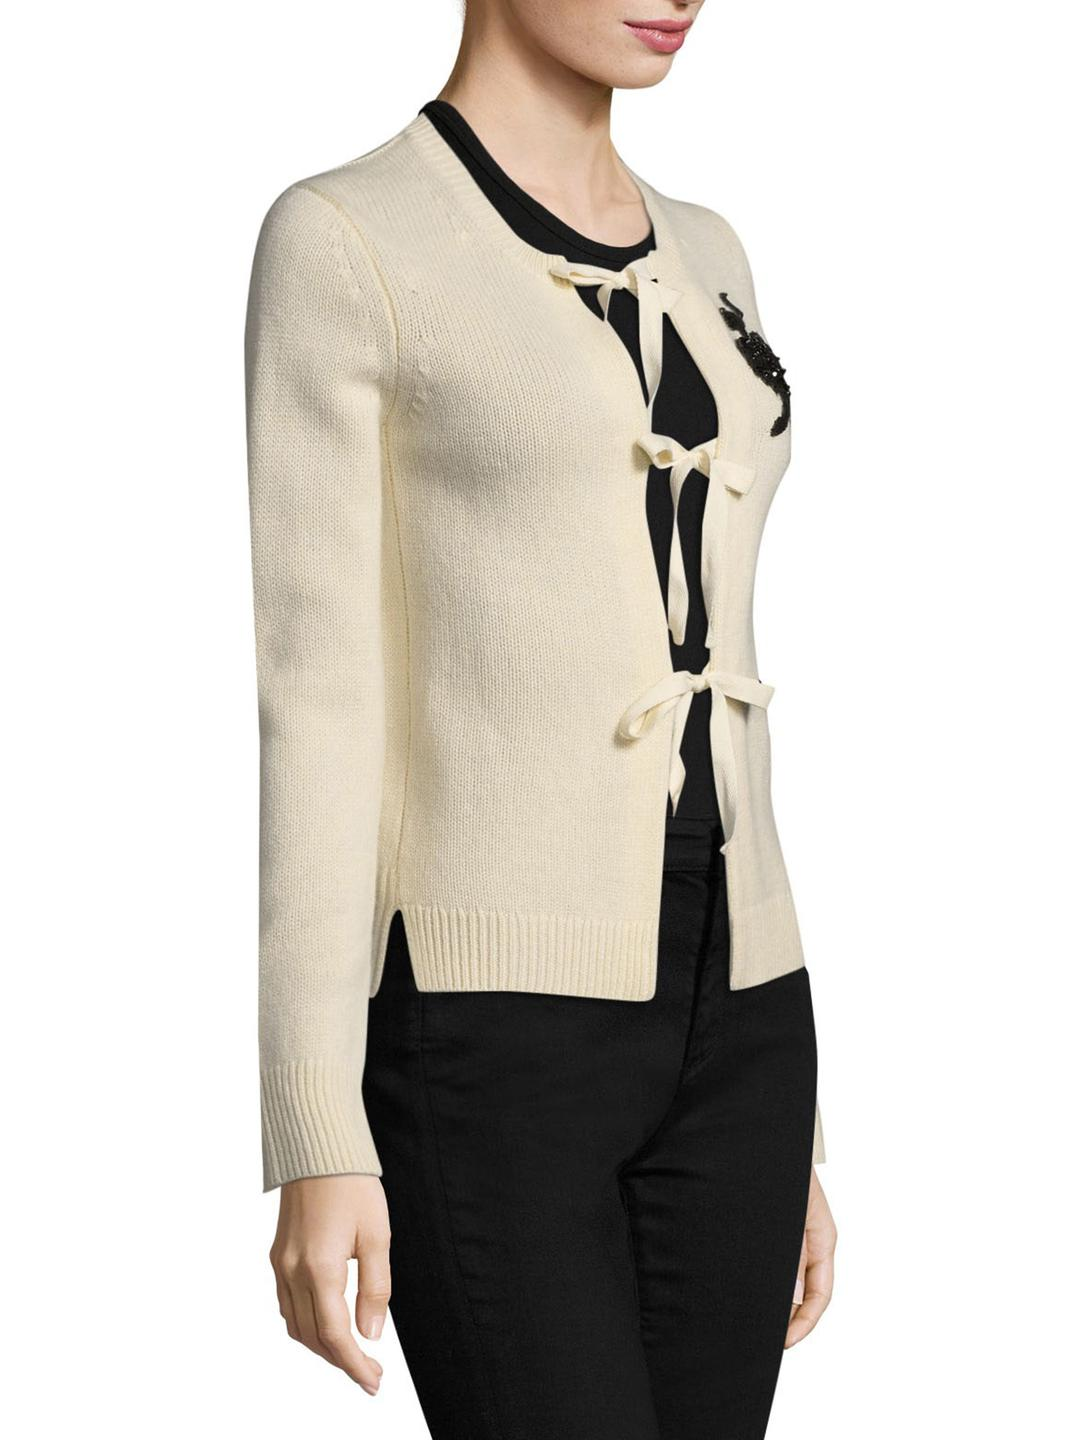 Marc jacobs Ballerina Sequin Cashmere Cardigan in White   Lyst